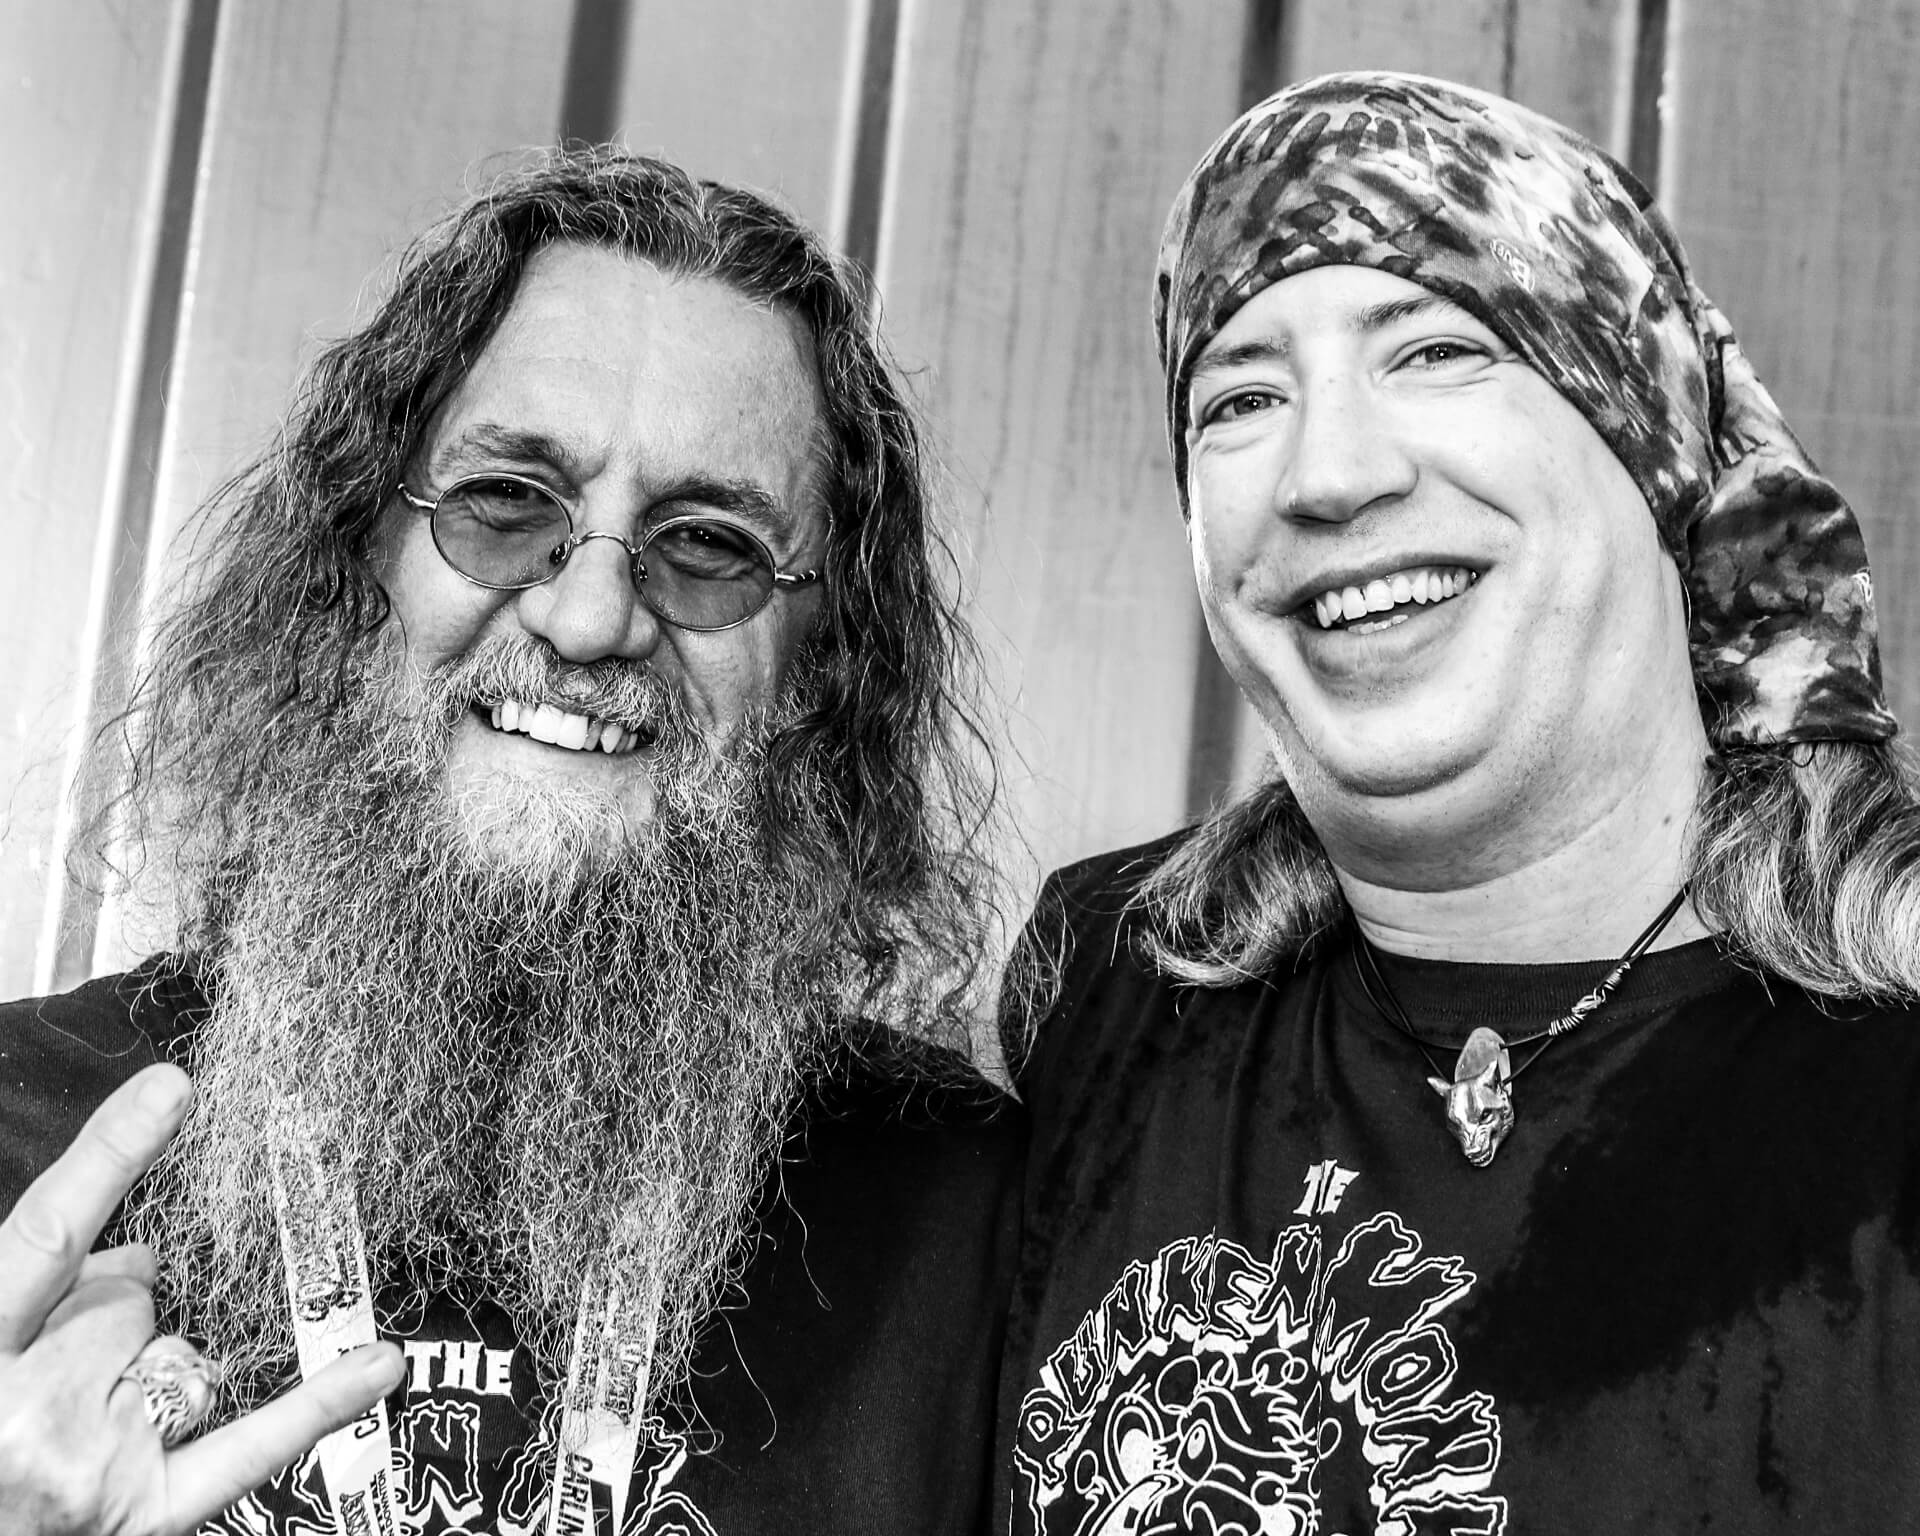 Paul, the then Bassist with Sabbotage, seen here in a chest up black & white image at the Drunken Monkey Rock Festival stood back stage alongside Krusher. Krusher is a life long hero of the bandana wearing Paul and this was an opportunity not to be missed. Both smile broadly for the camera and Krusher gives the universal 'Horns' gesture with his right hand.